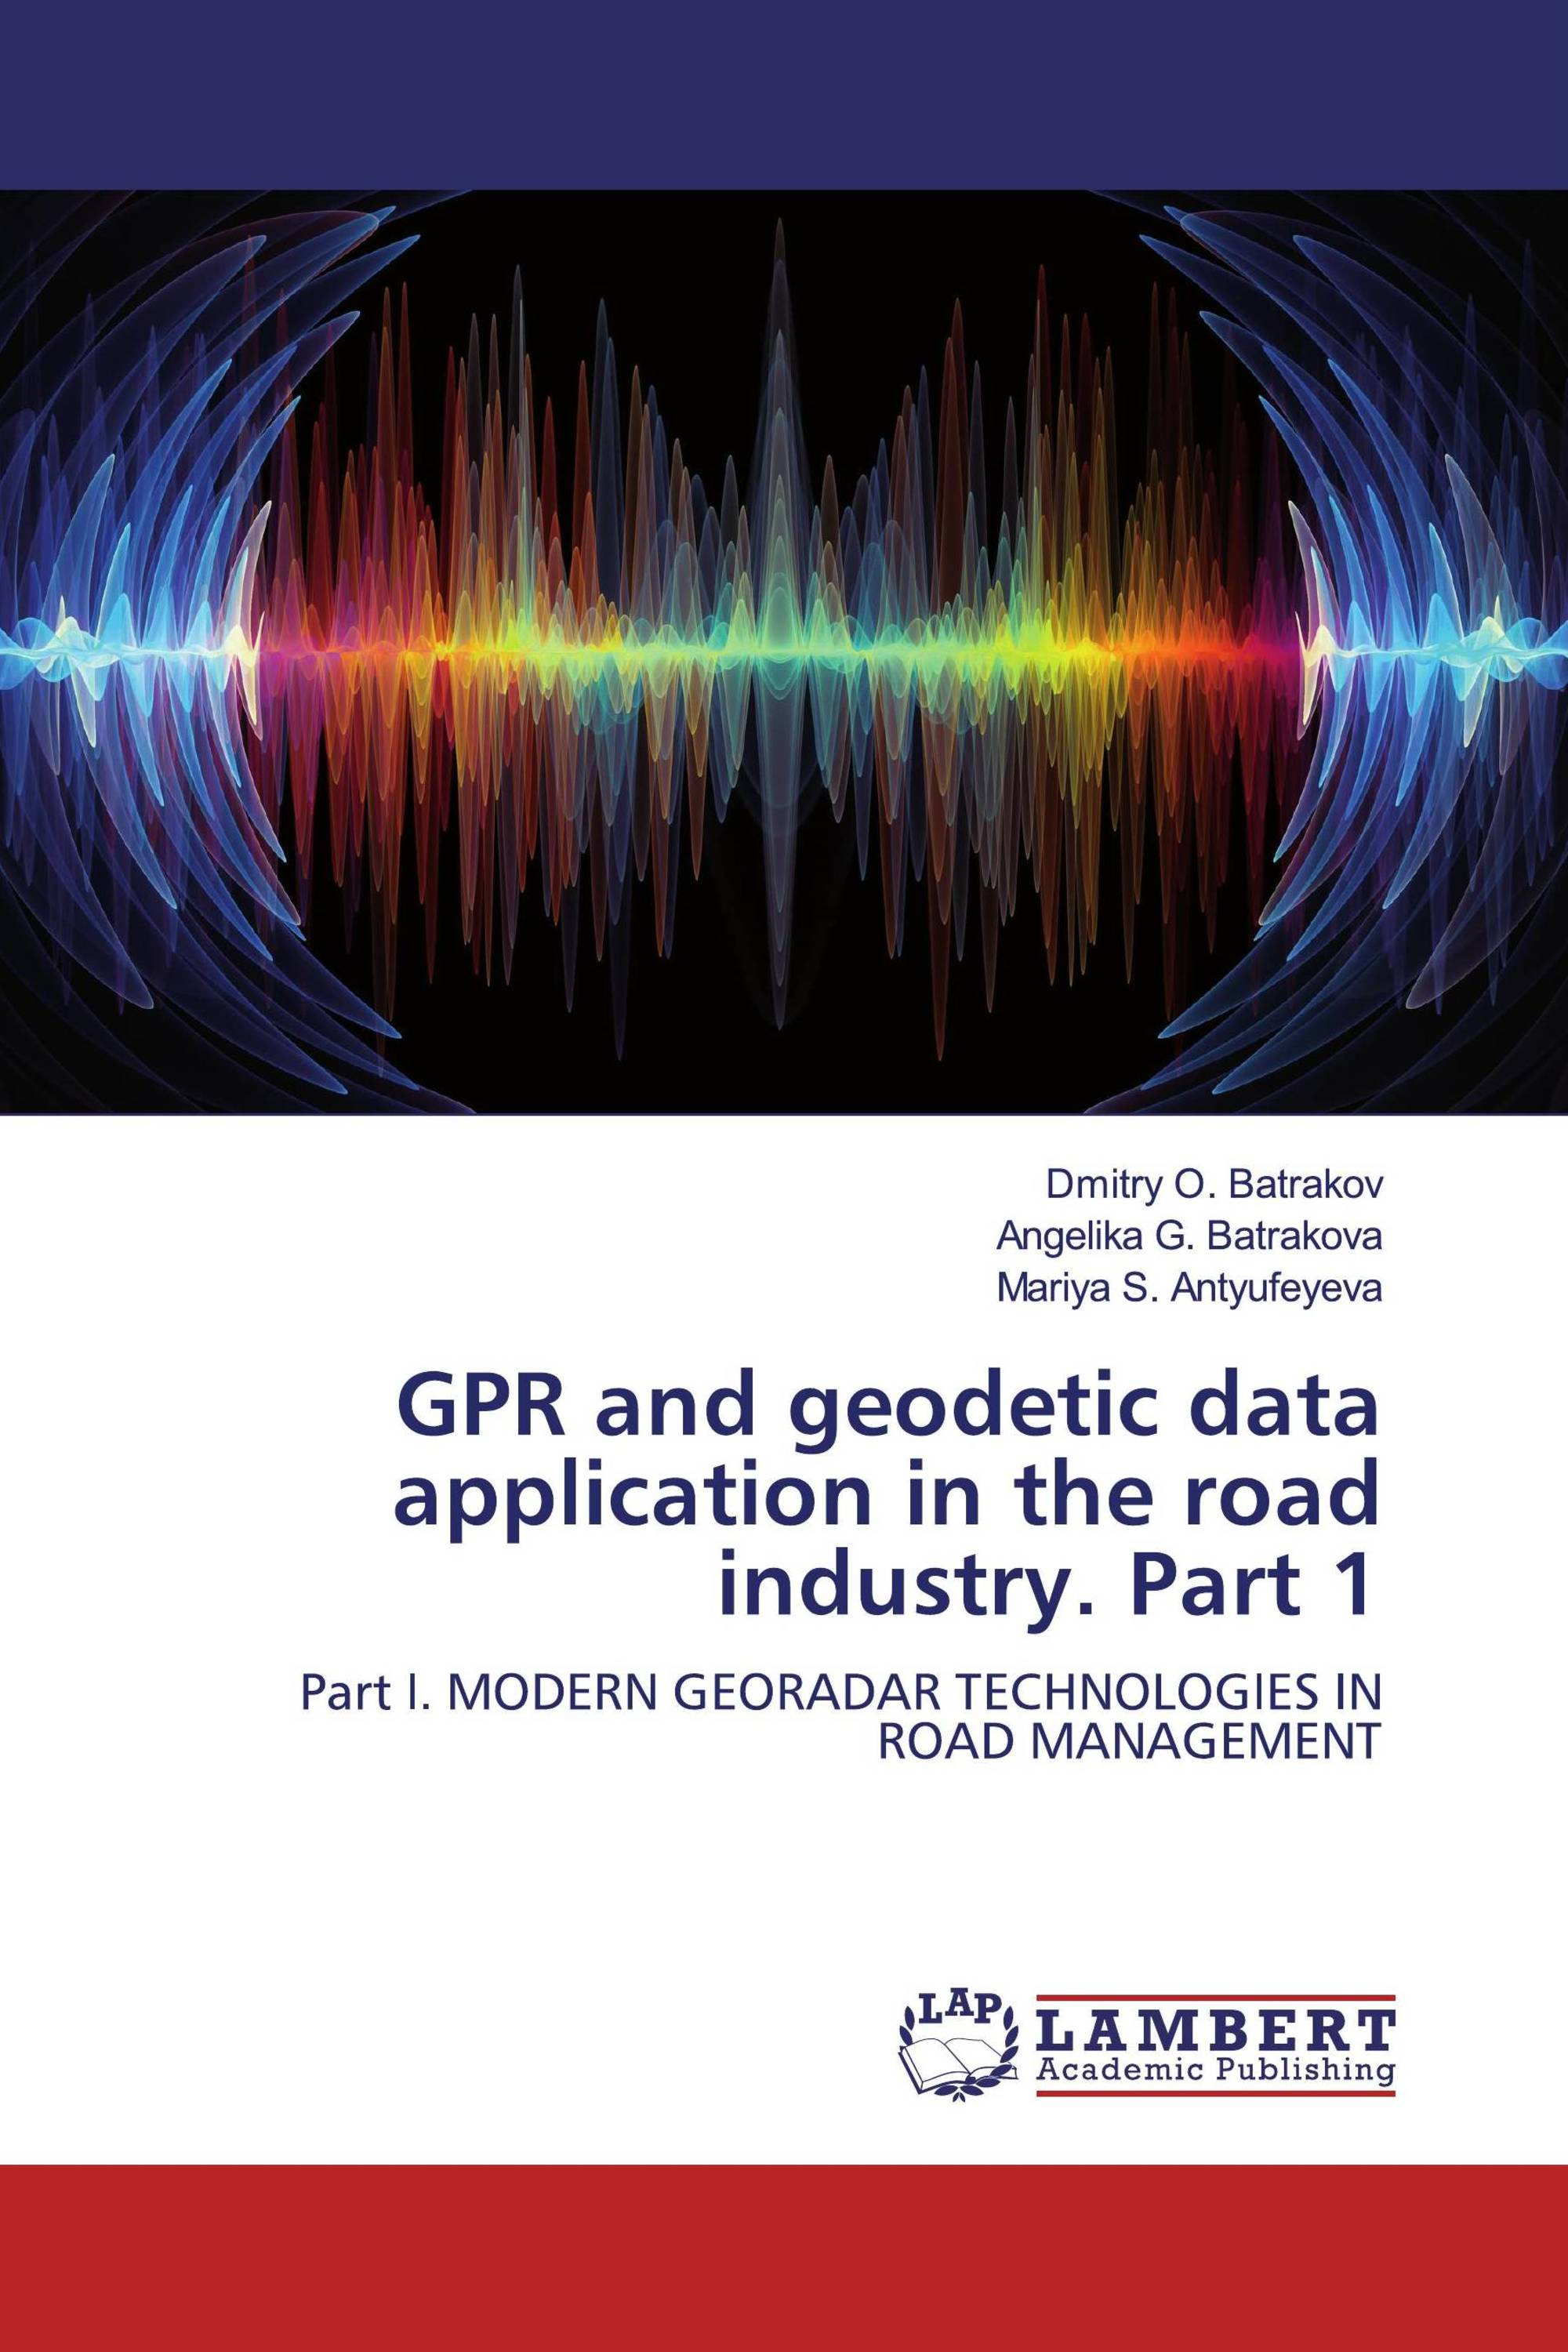 GPR and geodetic data application in the road industry. Part 1